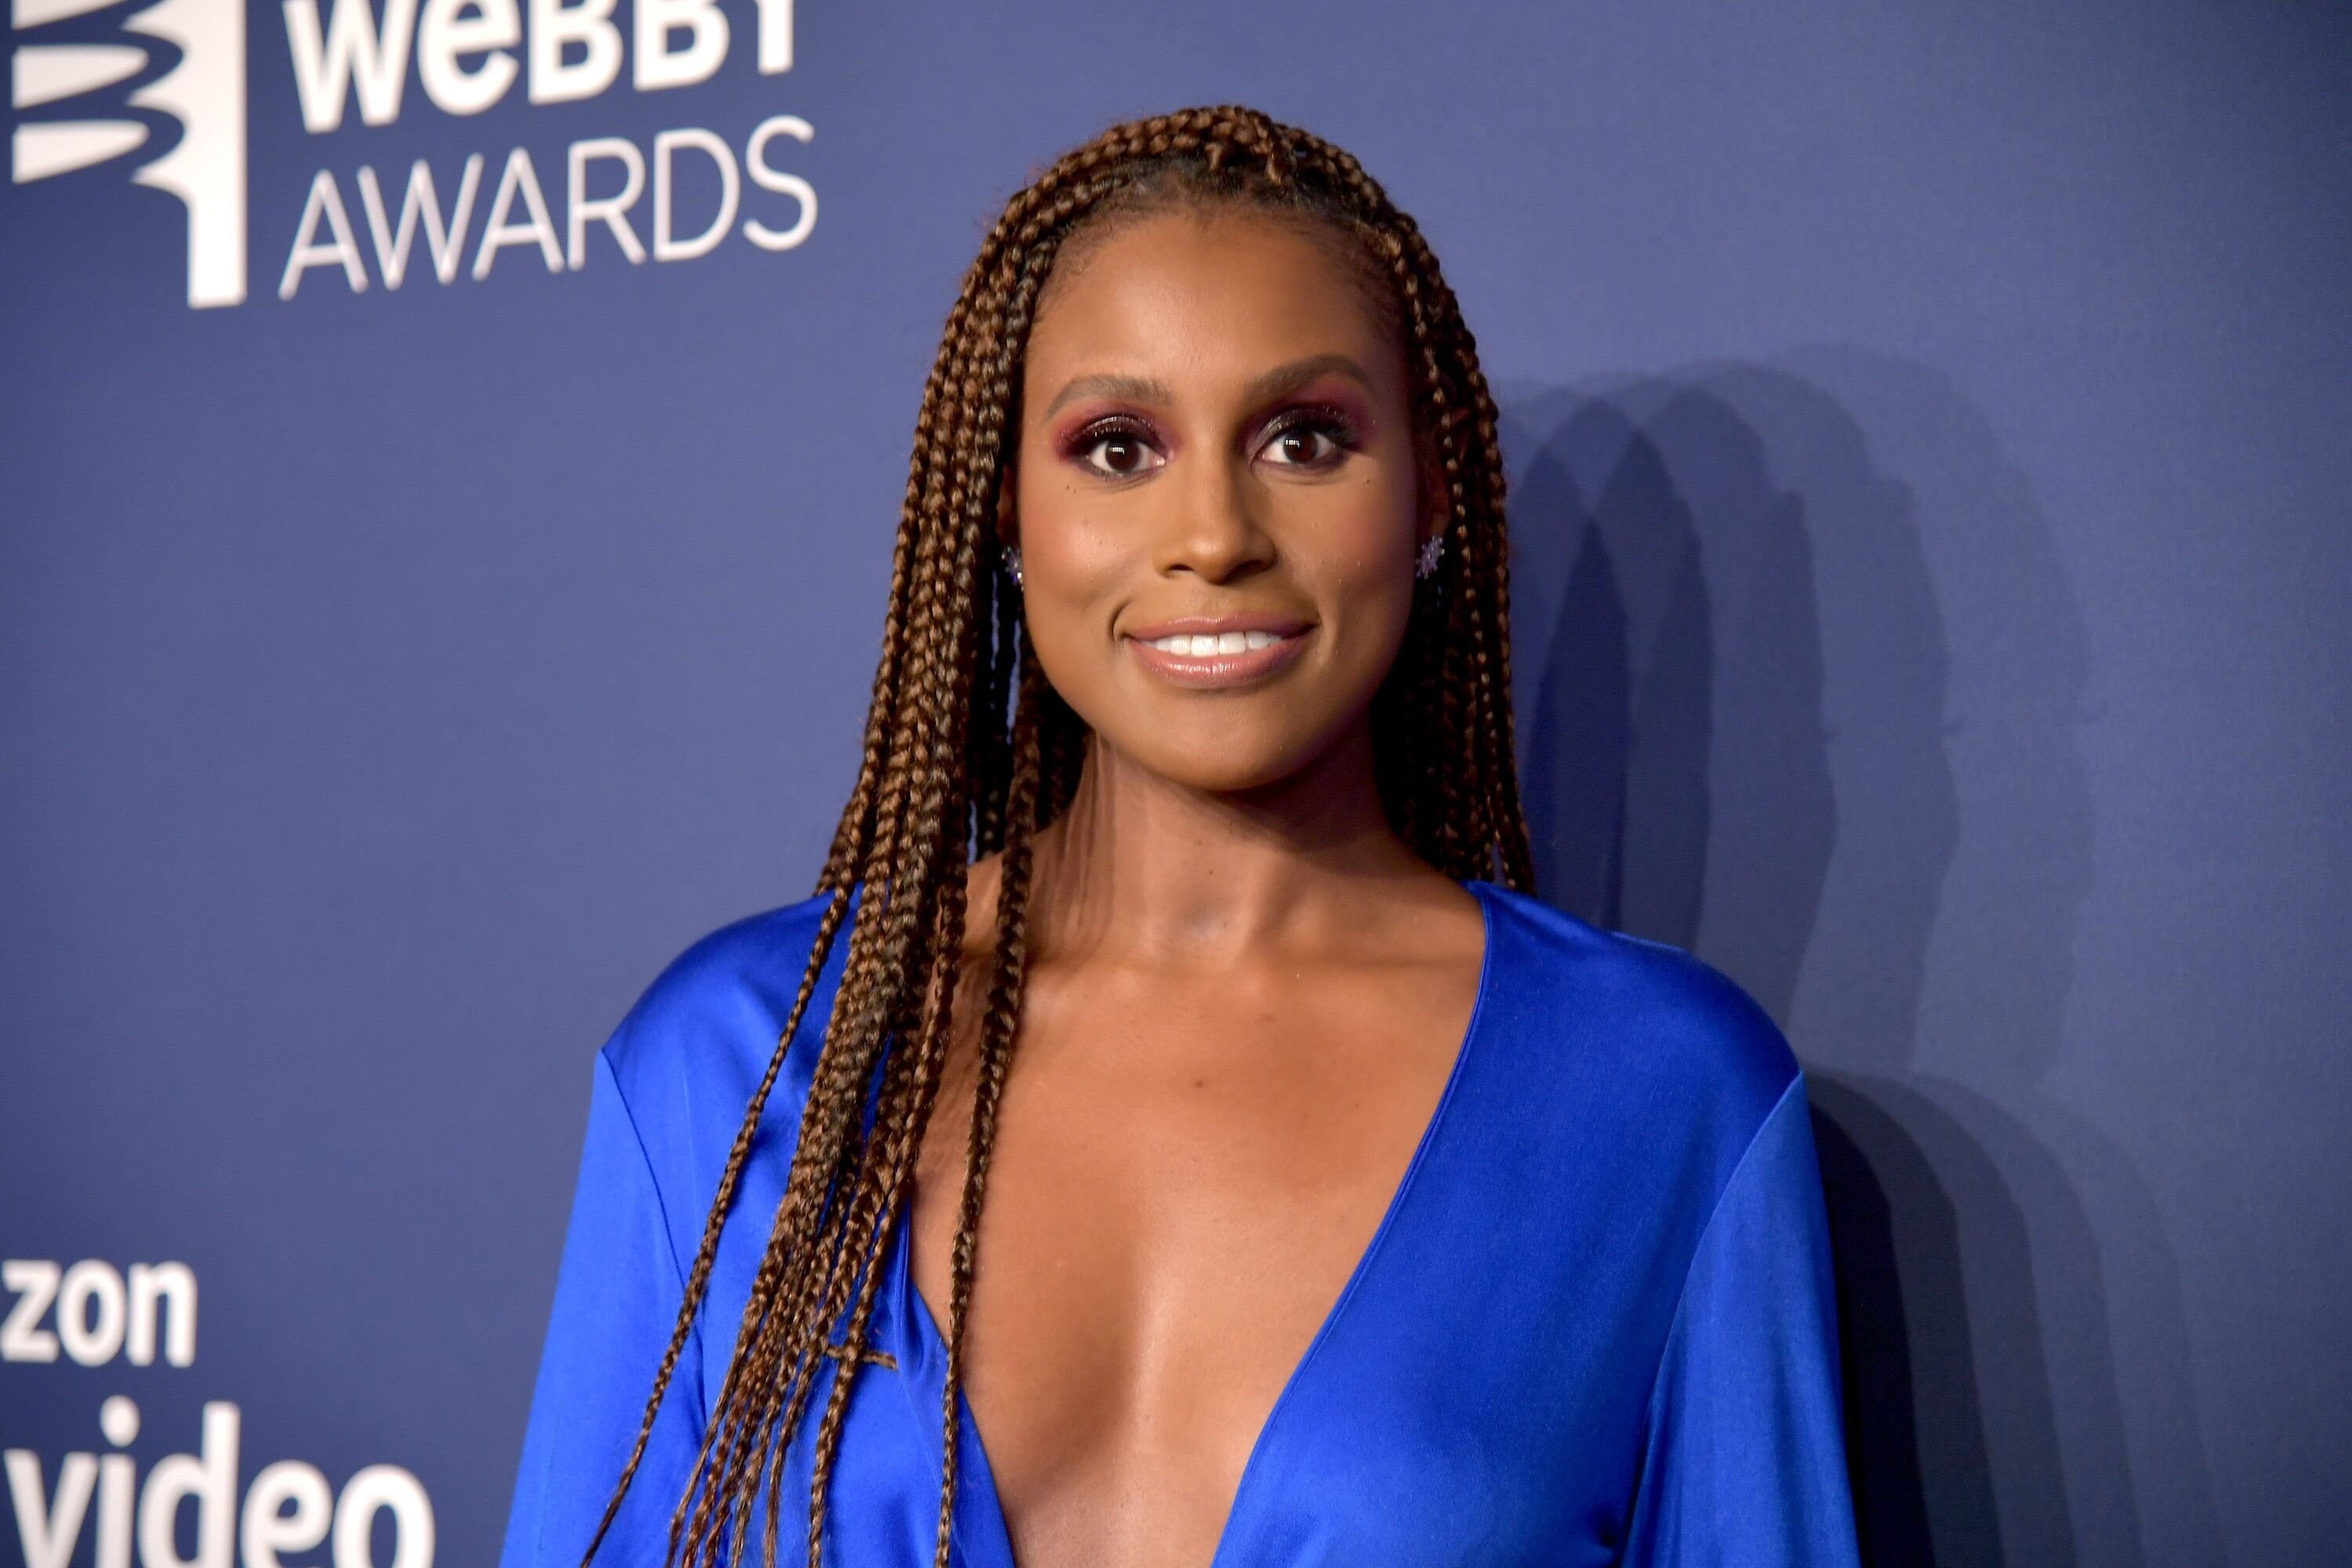 Issa Rae at the WebBT Awards | Source: Getty Images/GlobalImagesUkraine